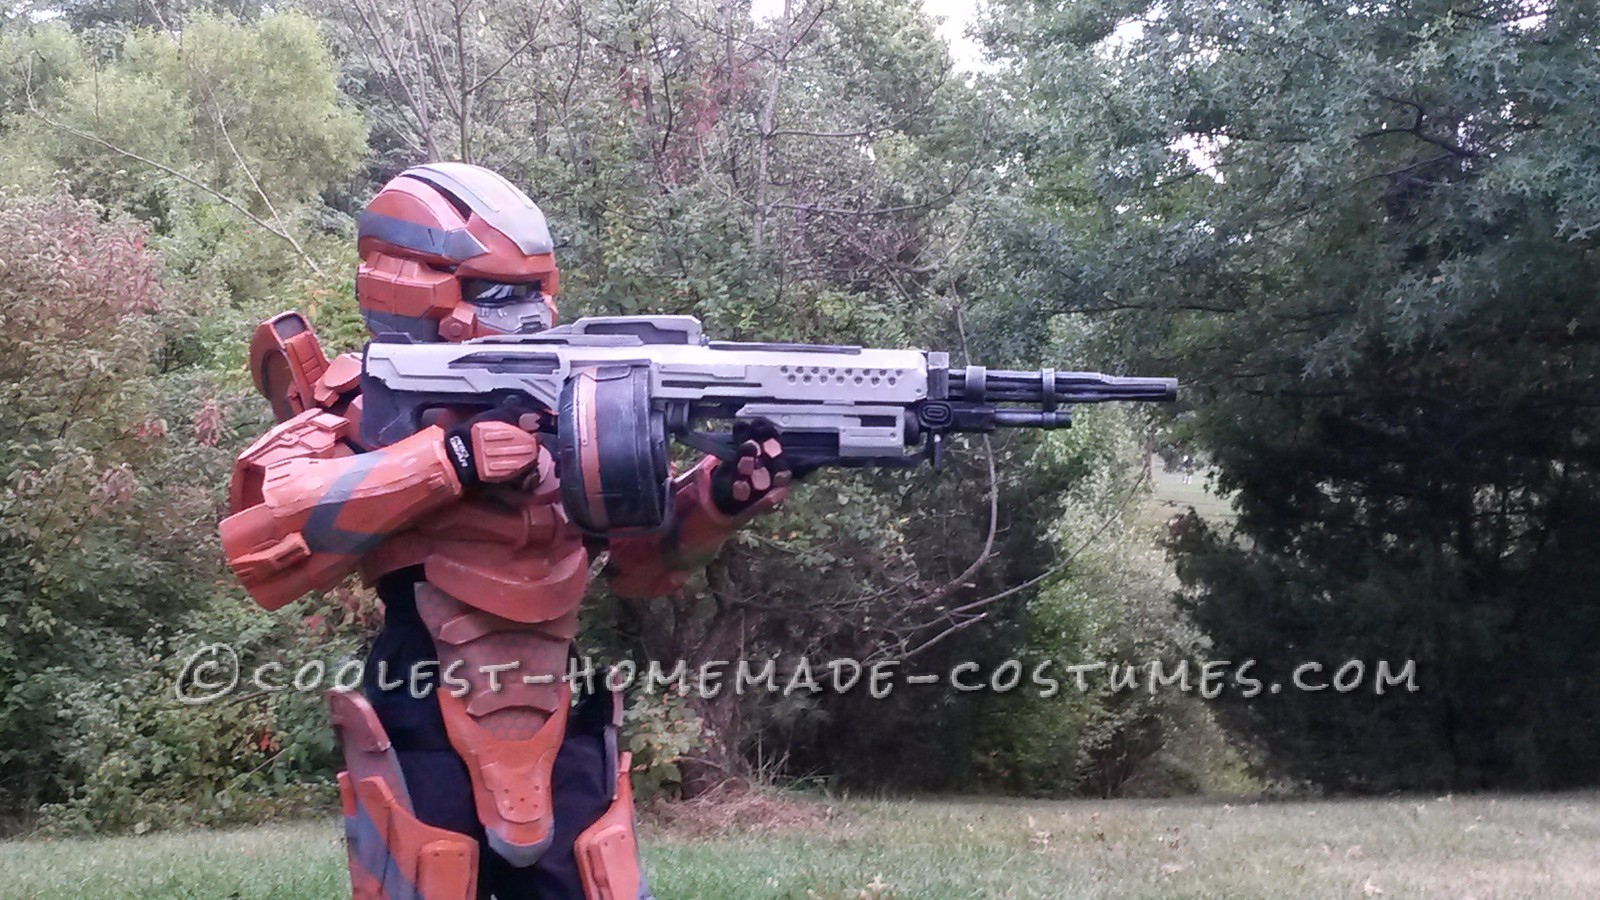 Halo 4 Warrior Costume for 9-Year-Old Boy Entirely Scratchbuilt!